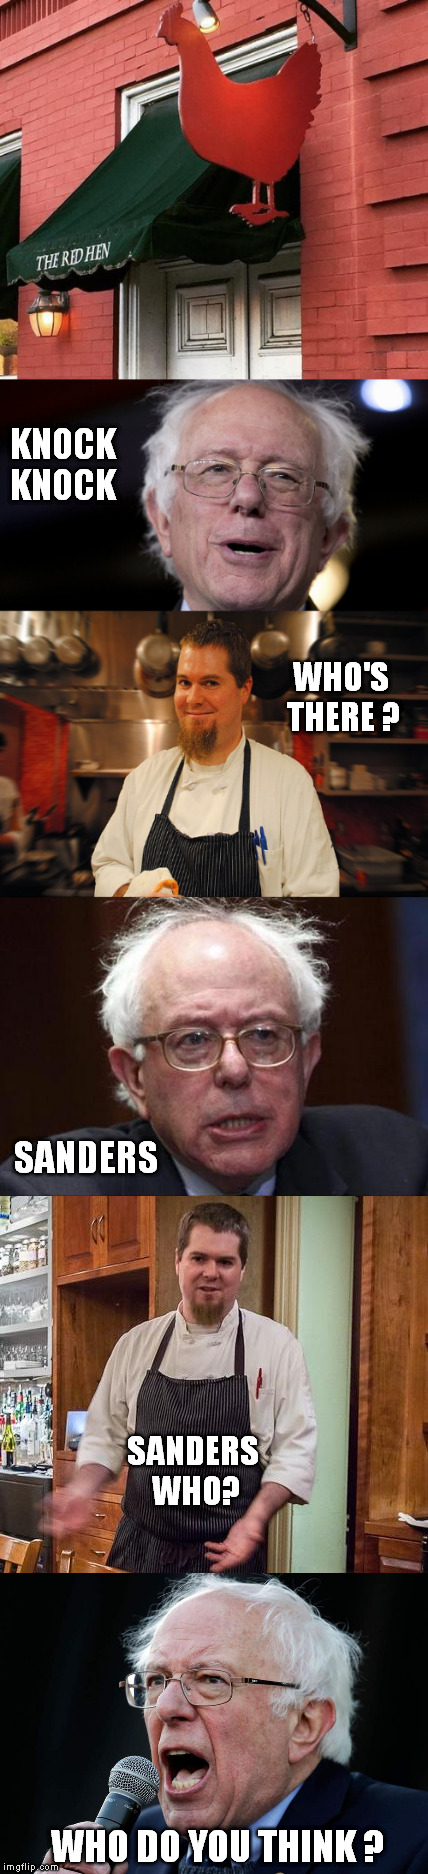 Cluck Cluck Red Hen | KNOCK KNOCK WHO DO YOU THINK ? WHO'S THERE ? SANDERS SANDERS WHO? | image tagged in memes,red hen,sarah sanders,bernie sanders,meme,collin donnelly | made w/ Imgflip meme maker